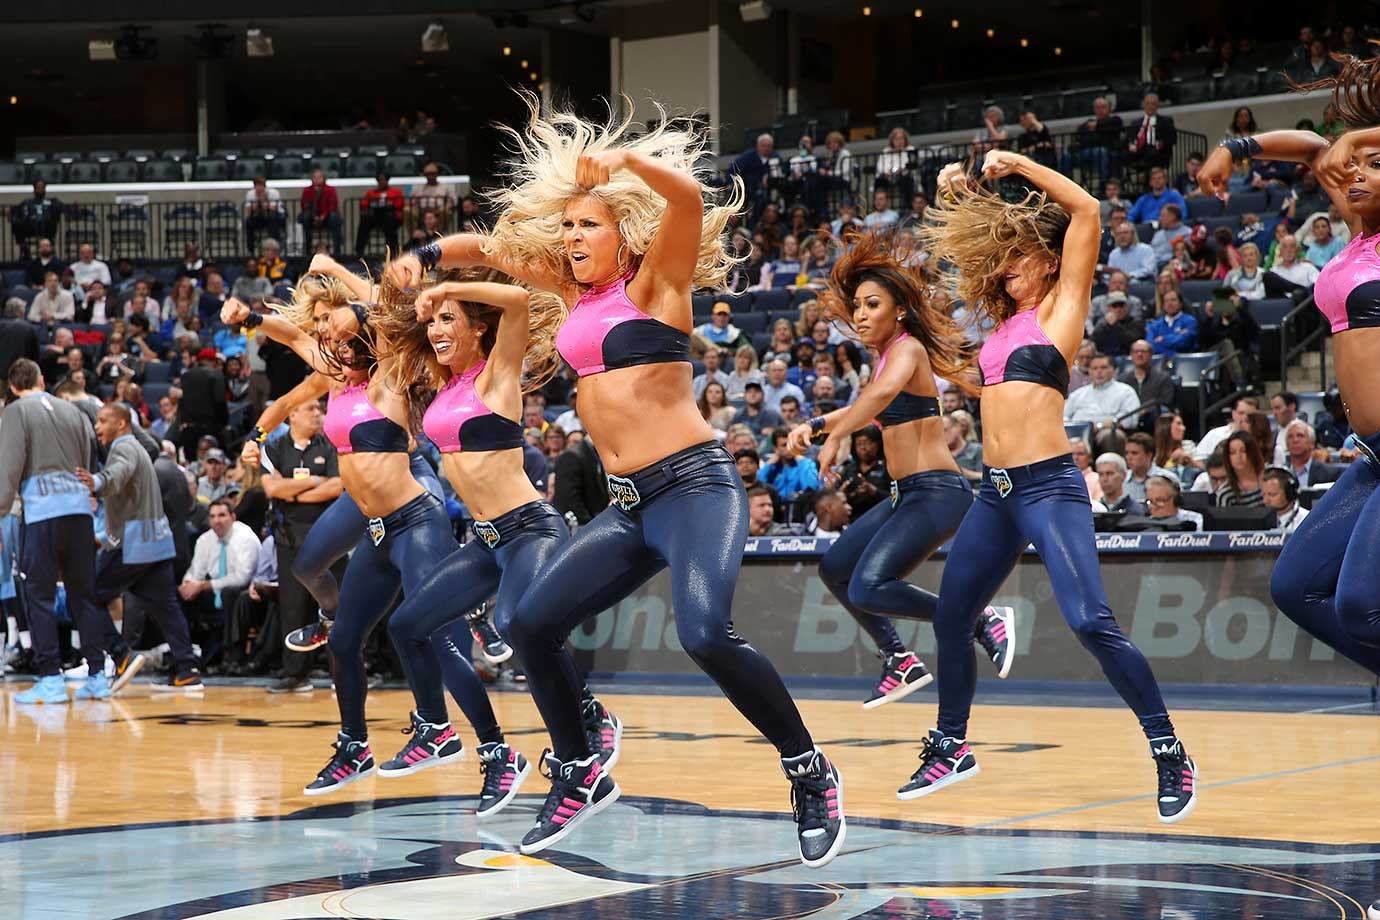 The Memphis Grizzlies dance team performs during the game against the Denver Nuggets.